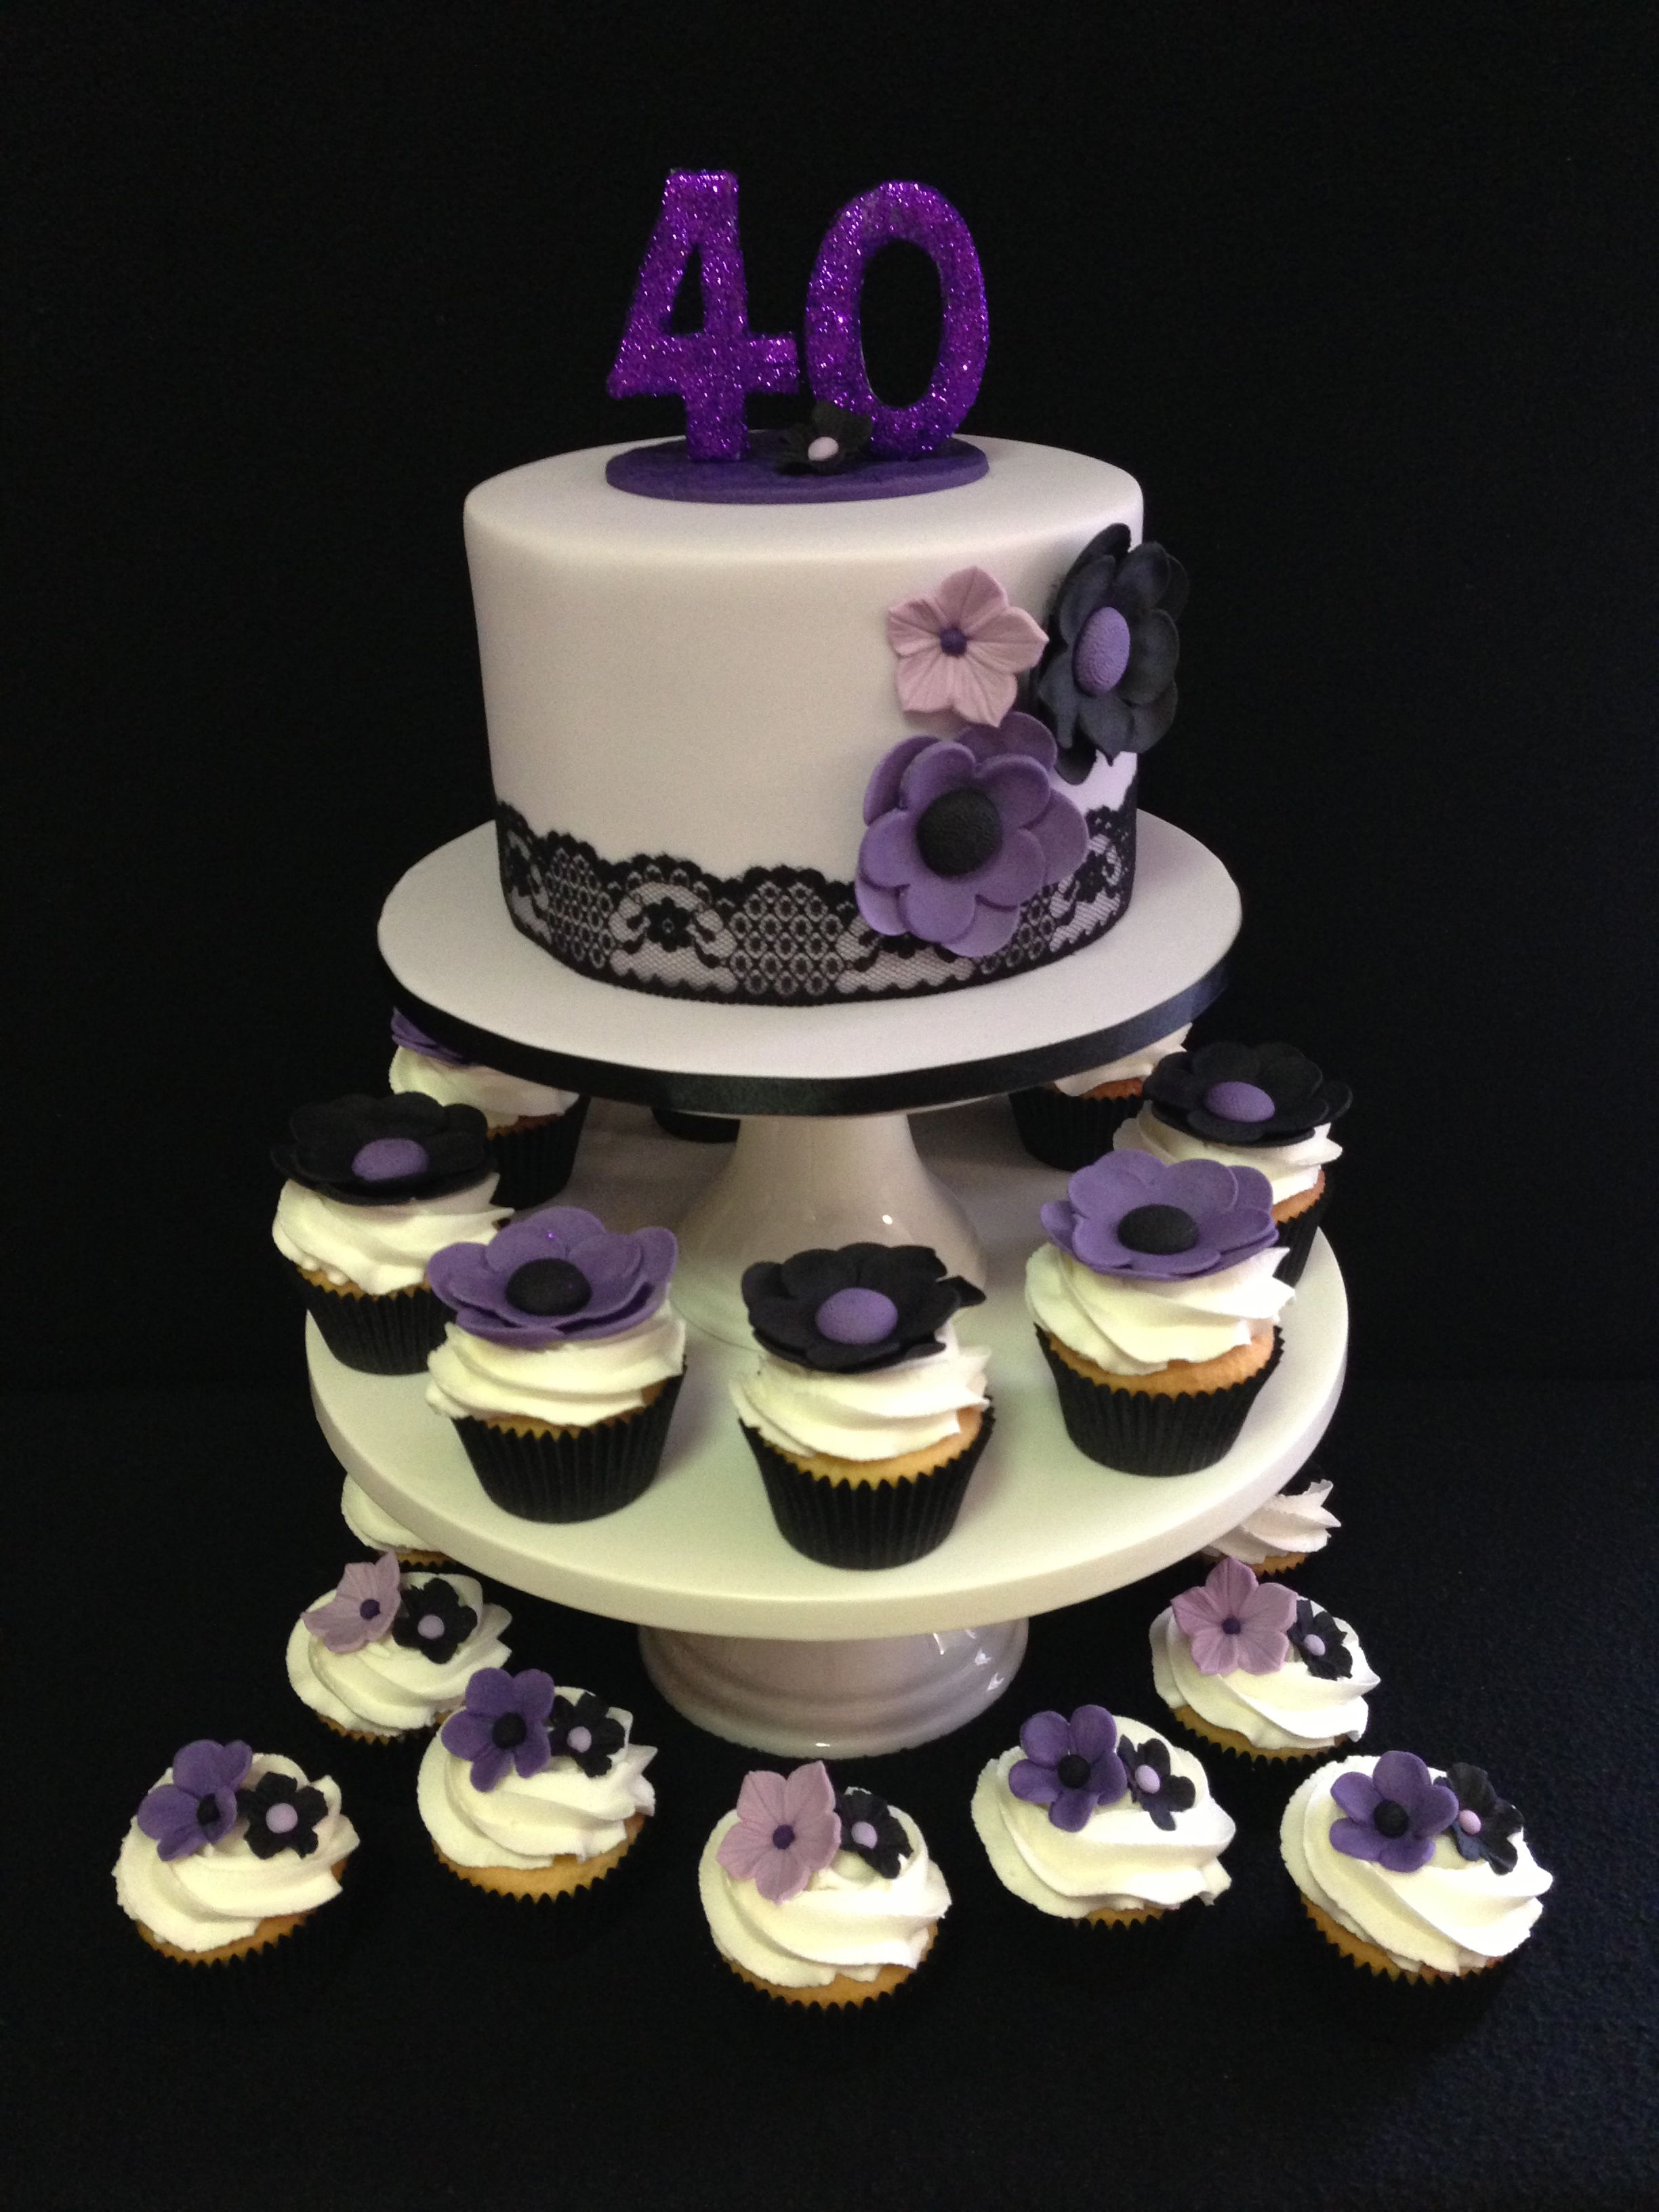 Phenomenal 40Th Birthday Cake And Cupcakes Color Combination Of Purple Lilac Personalised Birthday Cards Cominlily Jamesorg